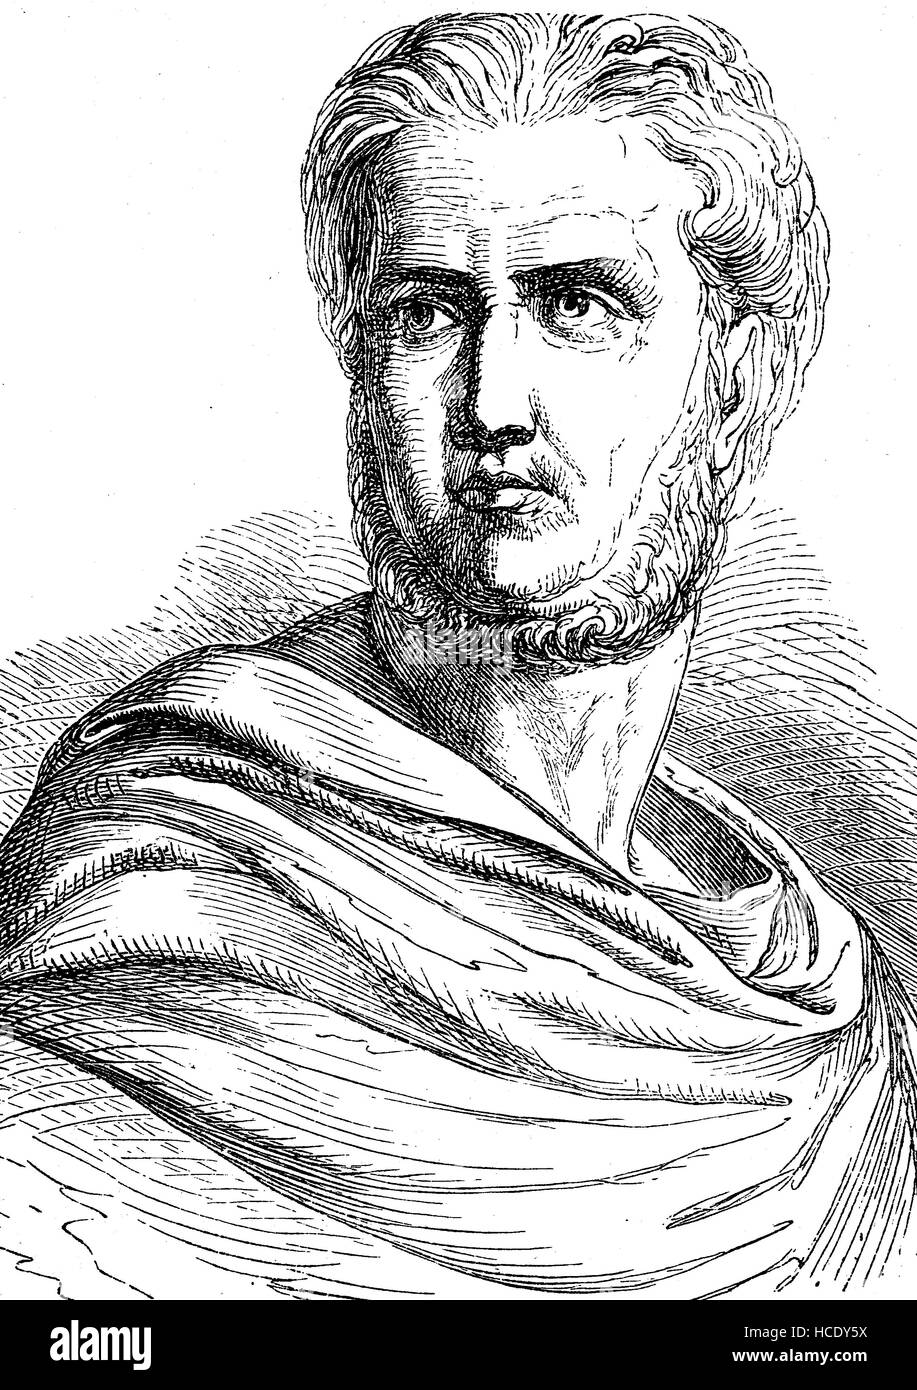 Publius, Gaius Cornelius Tacitus, AD 56 - AD 120, senator and a historian of the Roman Empire, the story of the - Stock Image